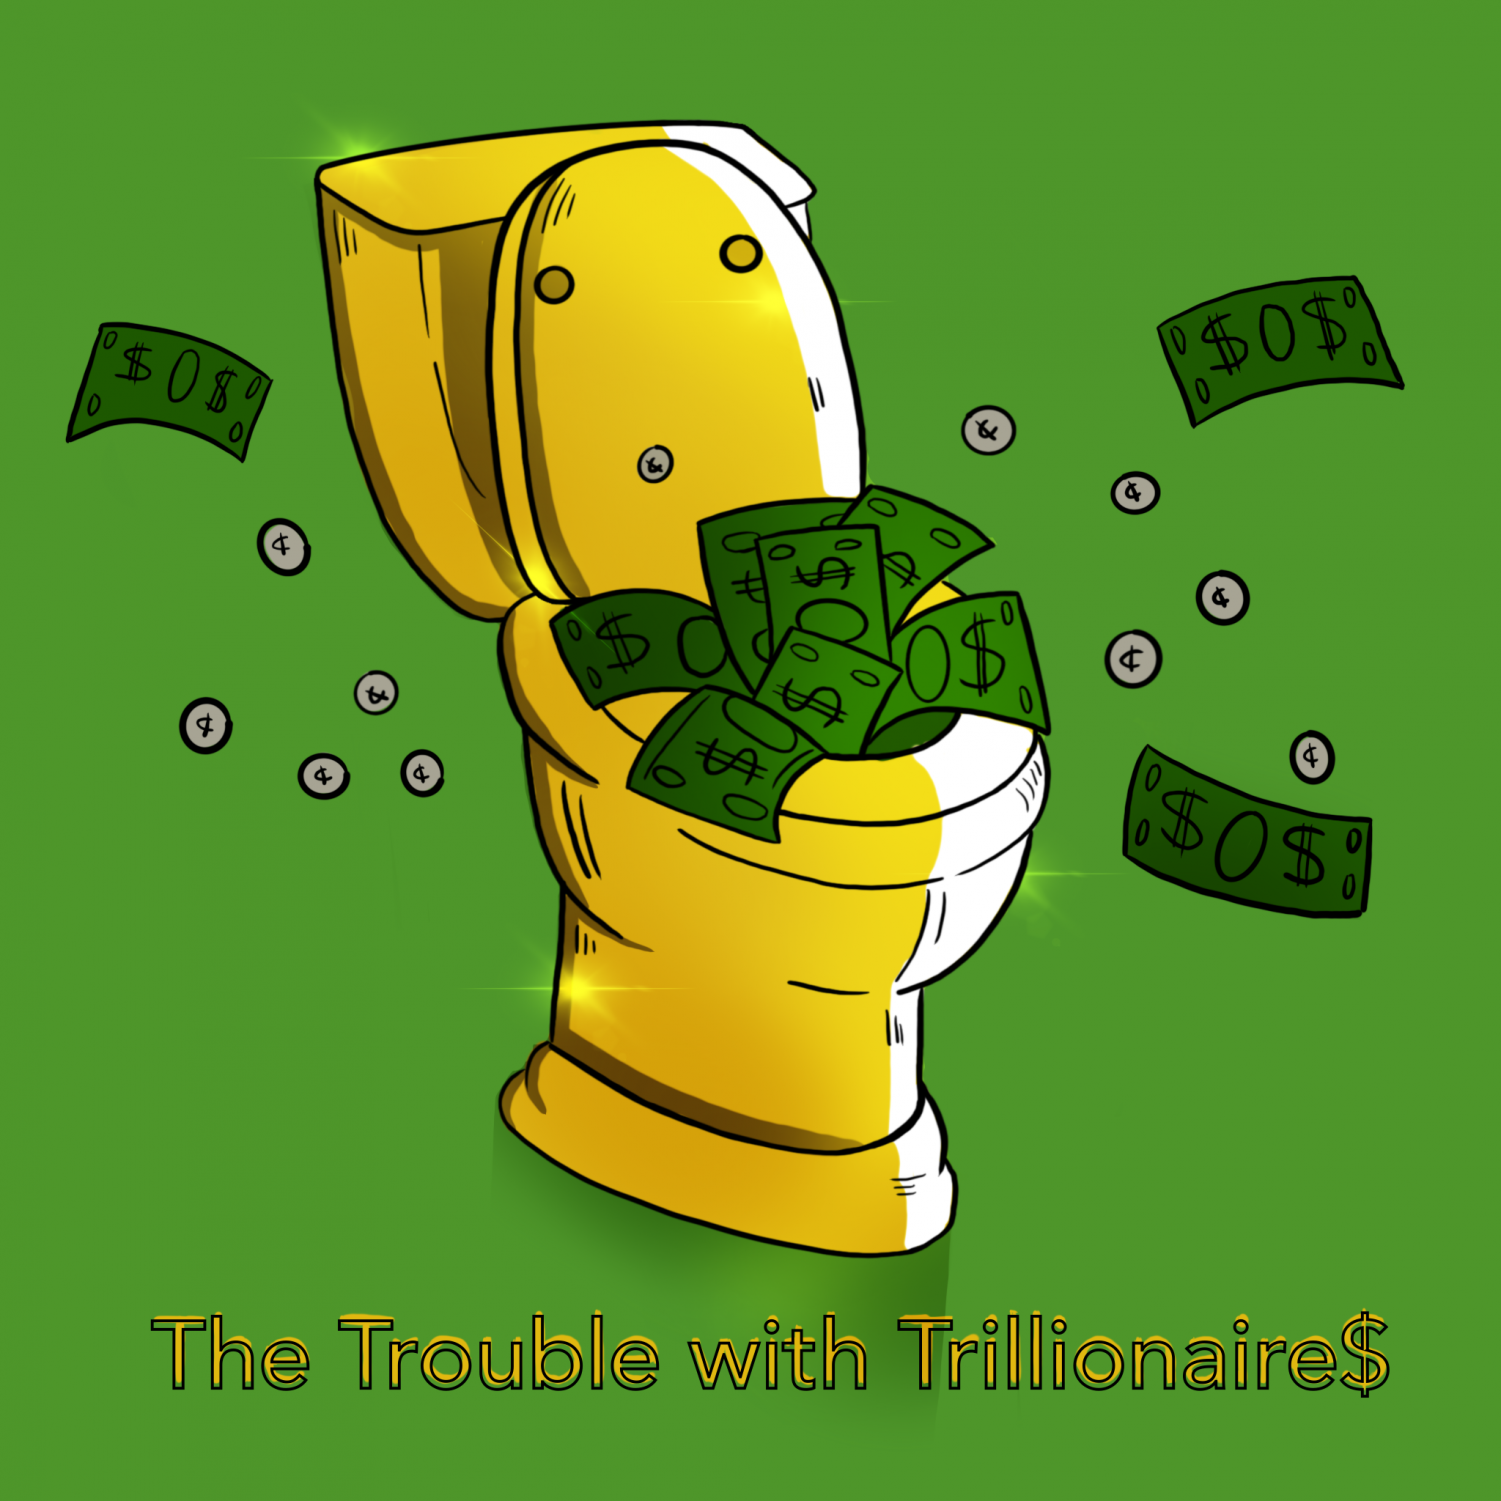 The Trouble with Trillionaires